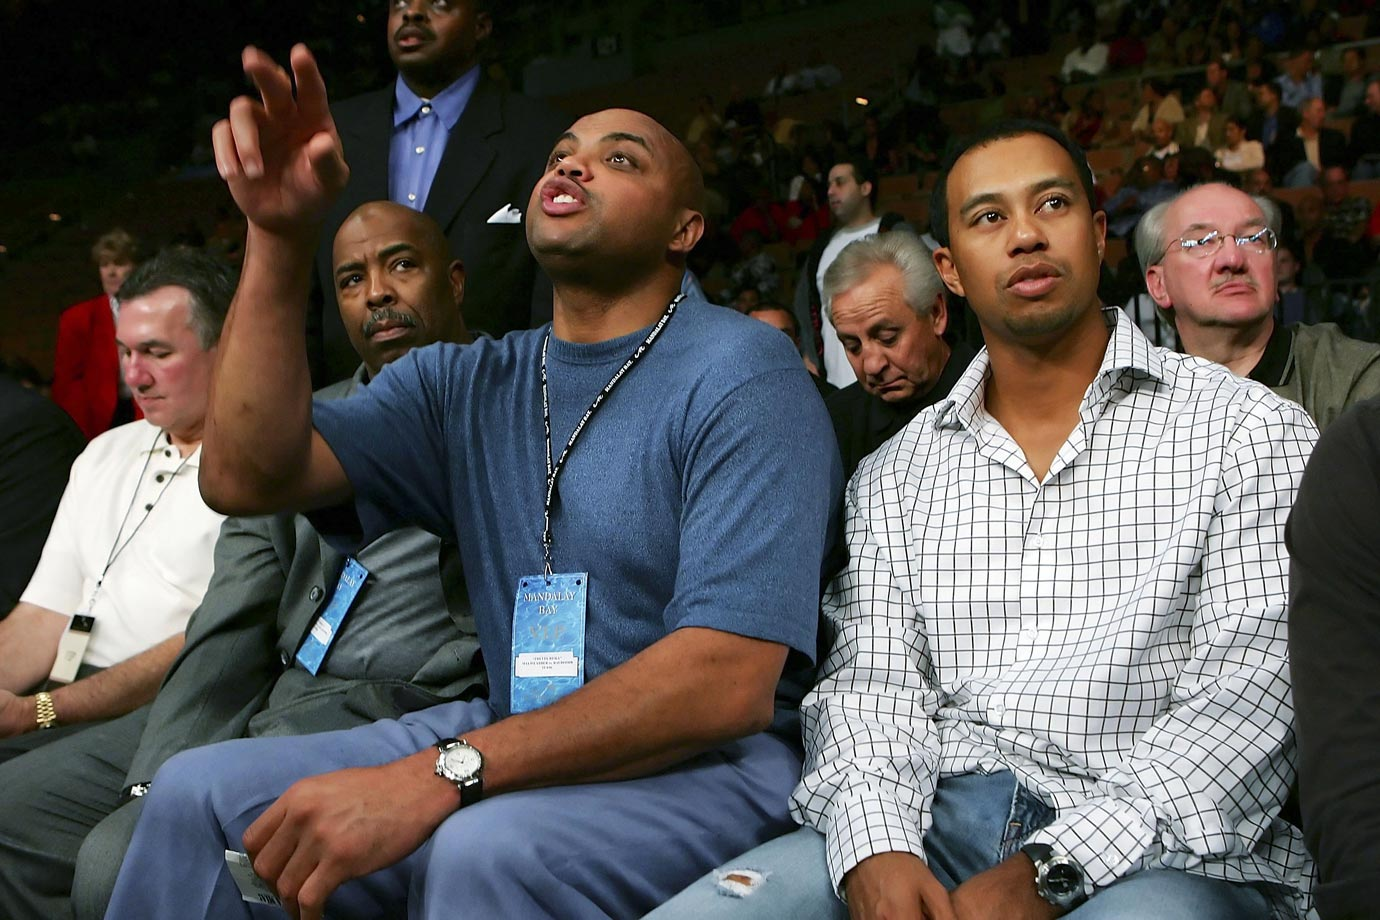 Charles Barkley sits with Tiger Woods during the Robert Guerrero and Orlando Salido IBF Featherweight Championship fight in Las Vegas. Despite Barkley's attempts to learn how to properly swing a golf club, the two are close friends.